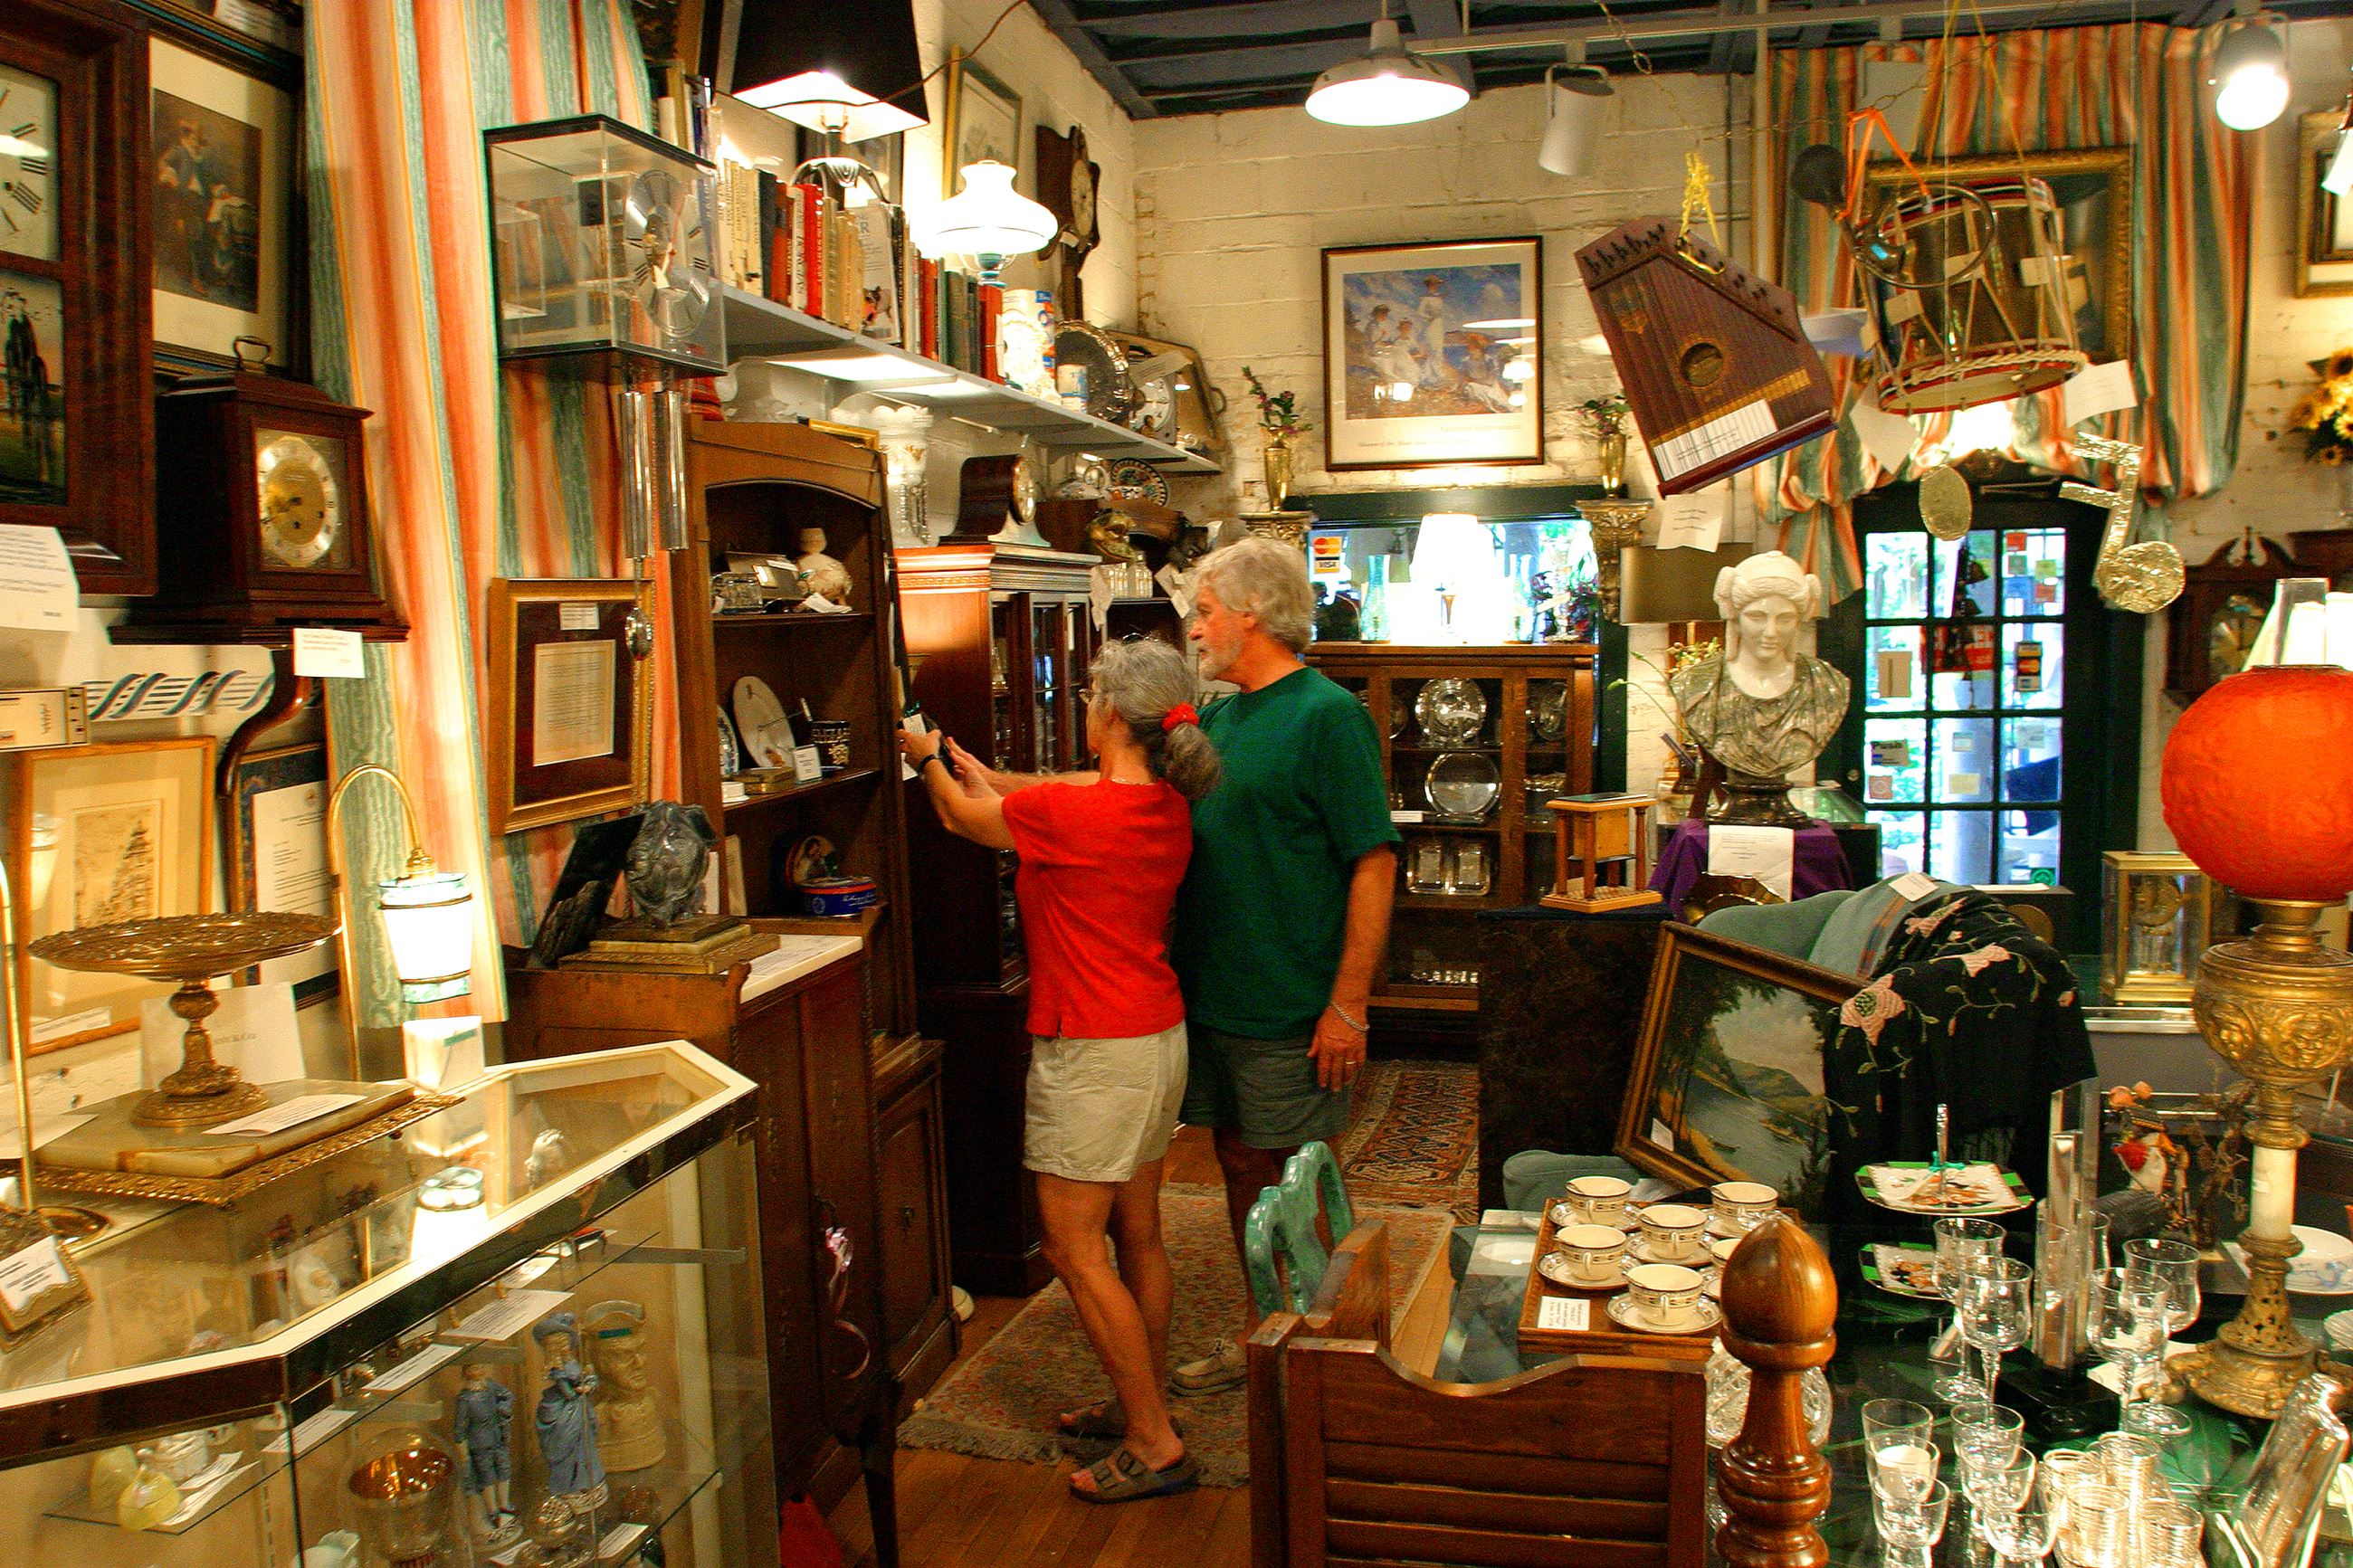 Couple shopping in antique store